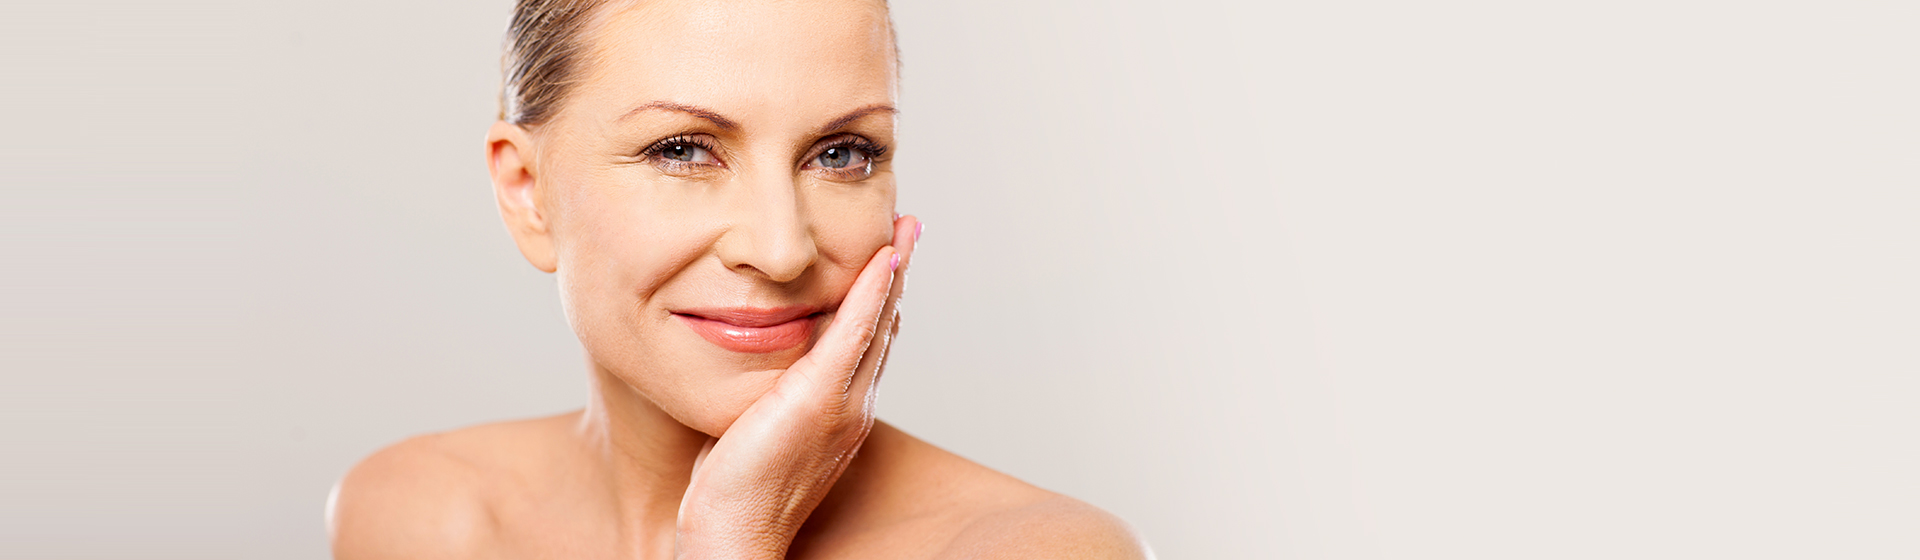 Injectable Institute Australia: Cosmetic Injections Sydney